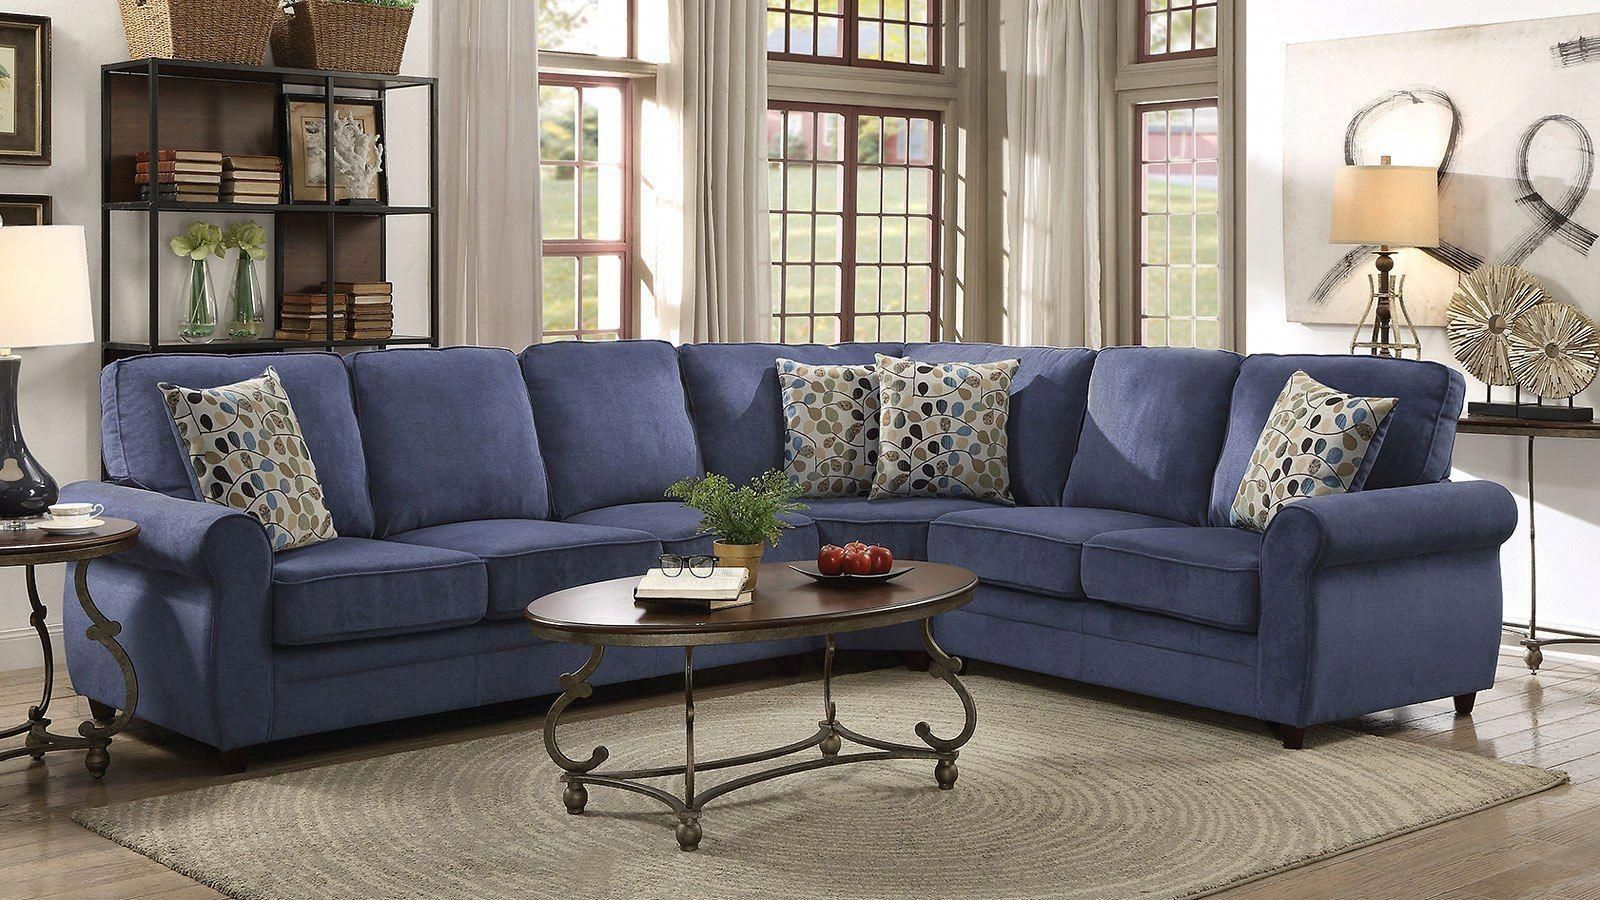 Surprising Kendrick Blue Sectional W Pull Out Sleeper City Furniture Cjindustries Chair Design For Home Cjindustriesco